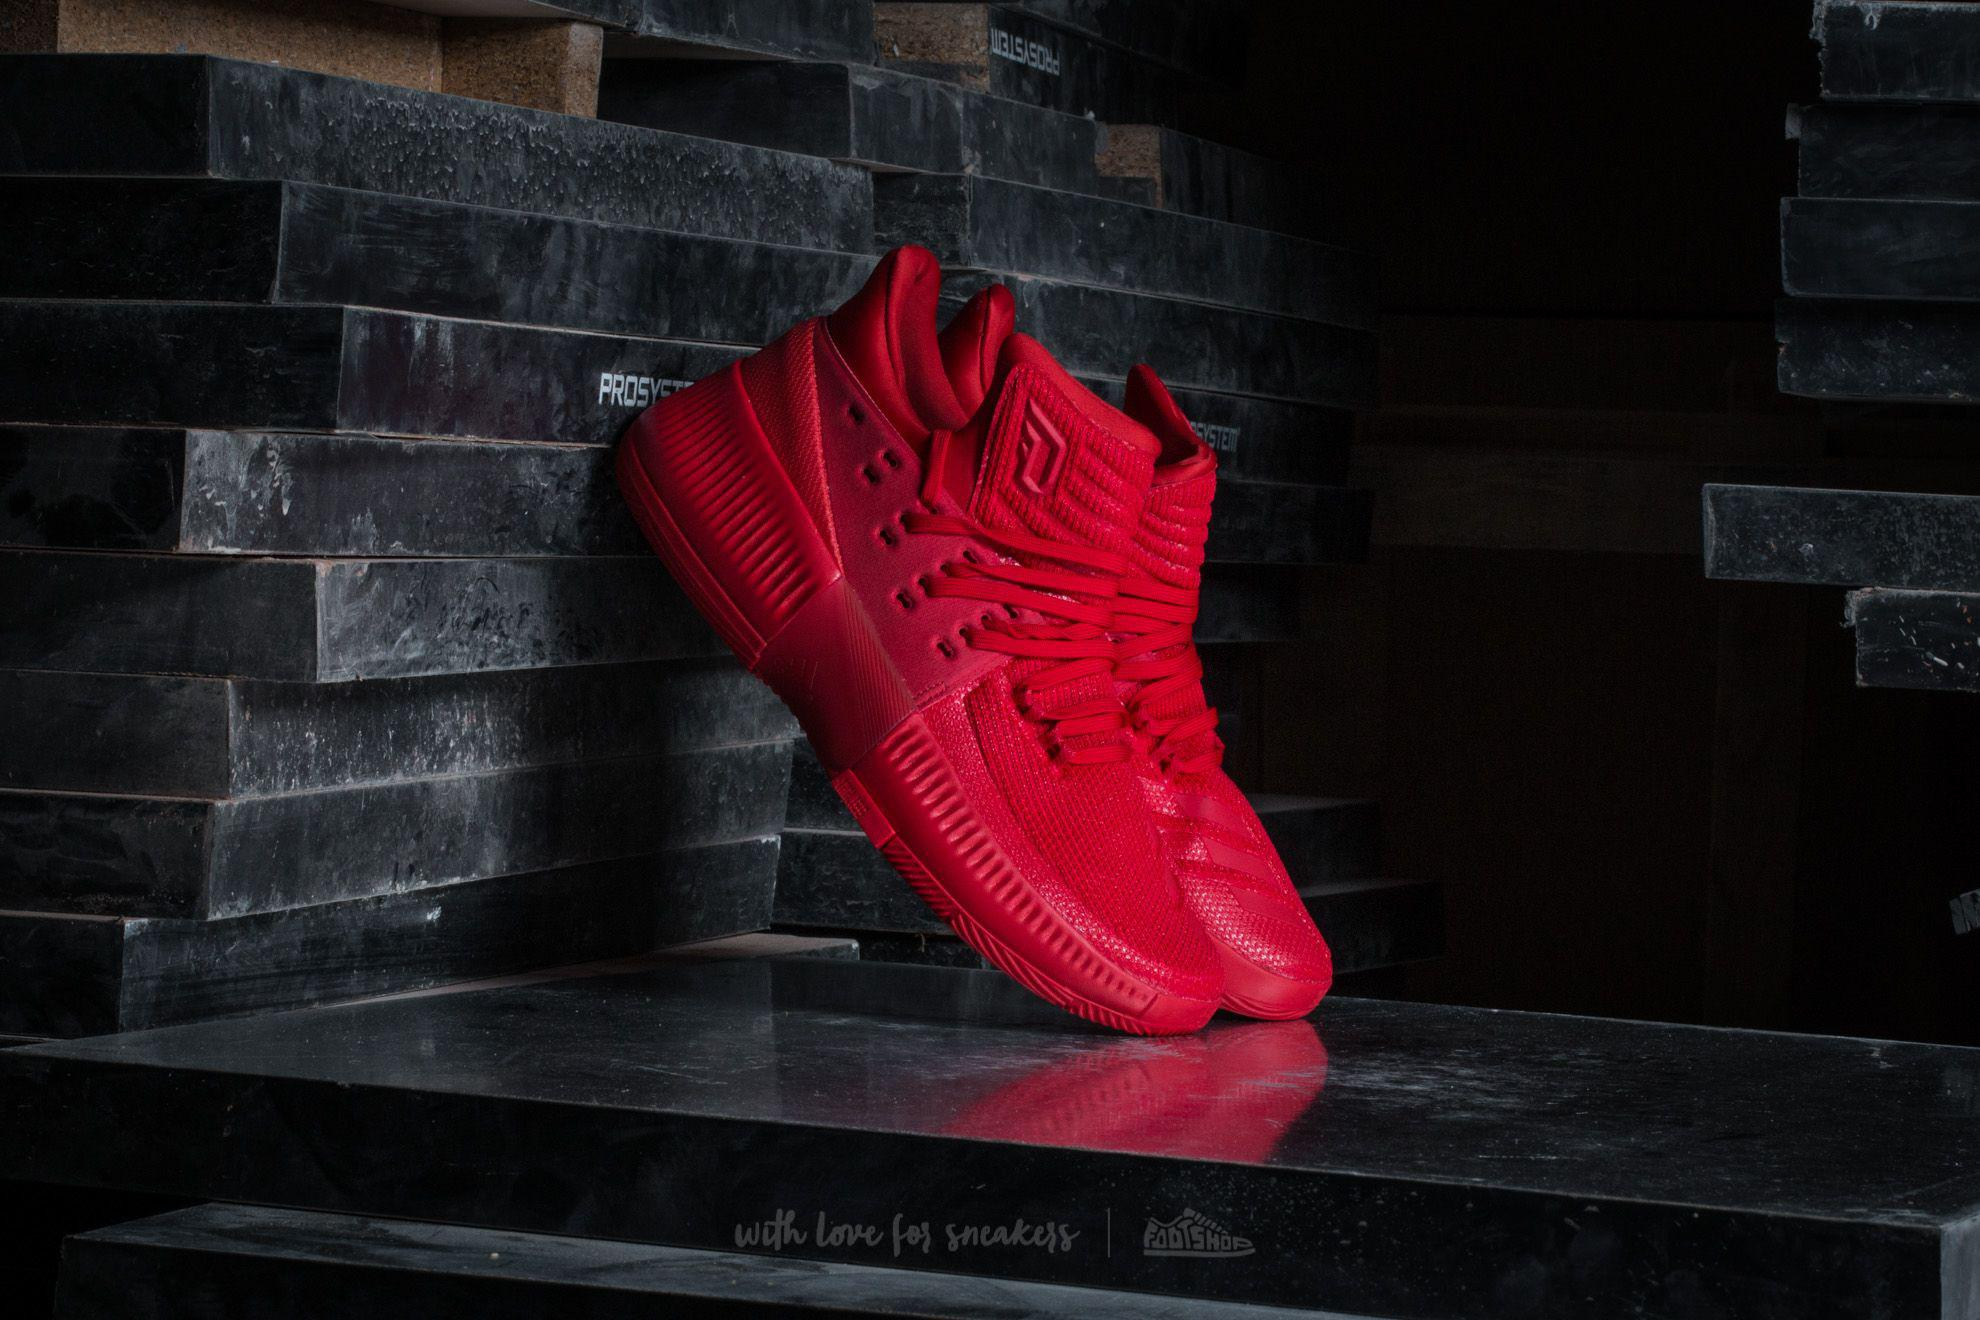 sports shoes b17f5 159c0 Lyst - Adidas Originals Adidas Damian Lillard 3 Scarlet in Red for Men